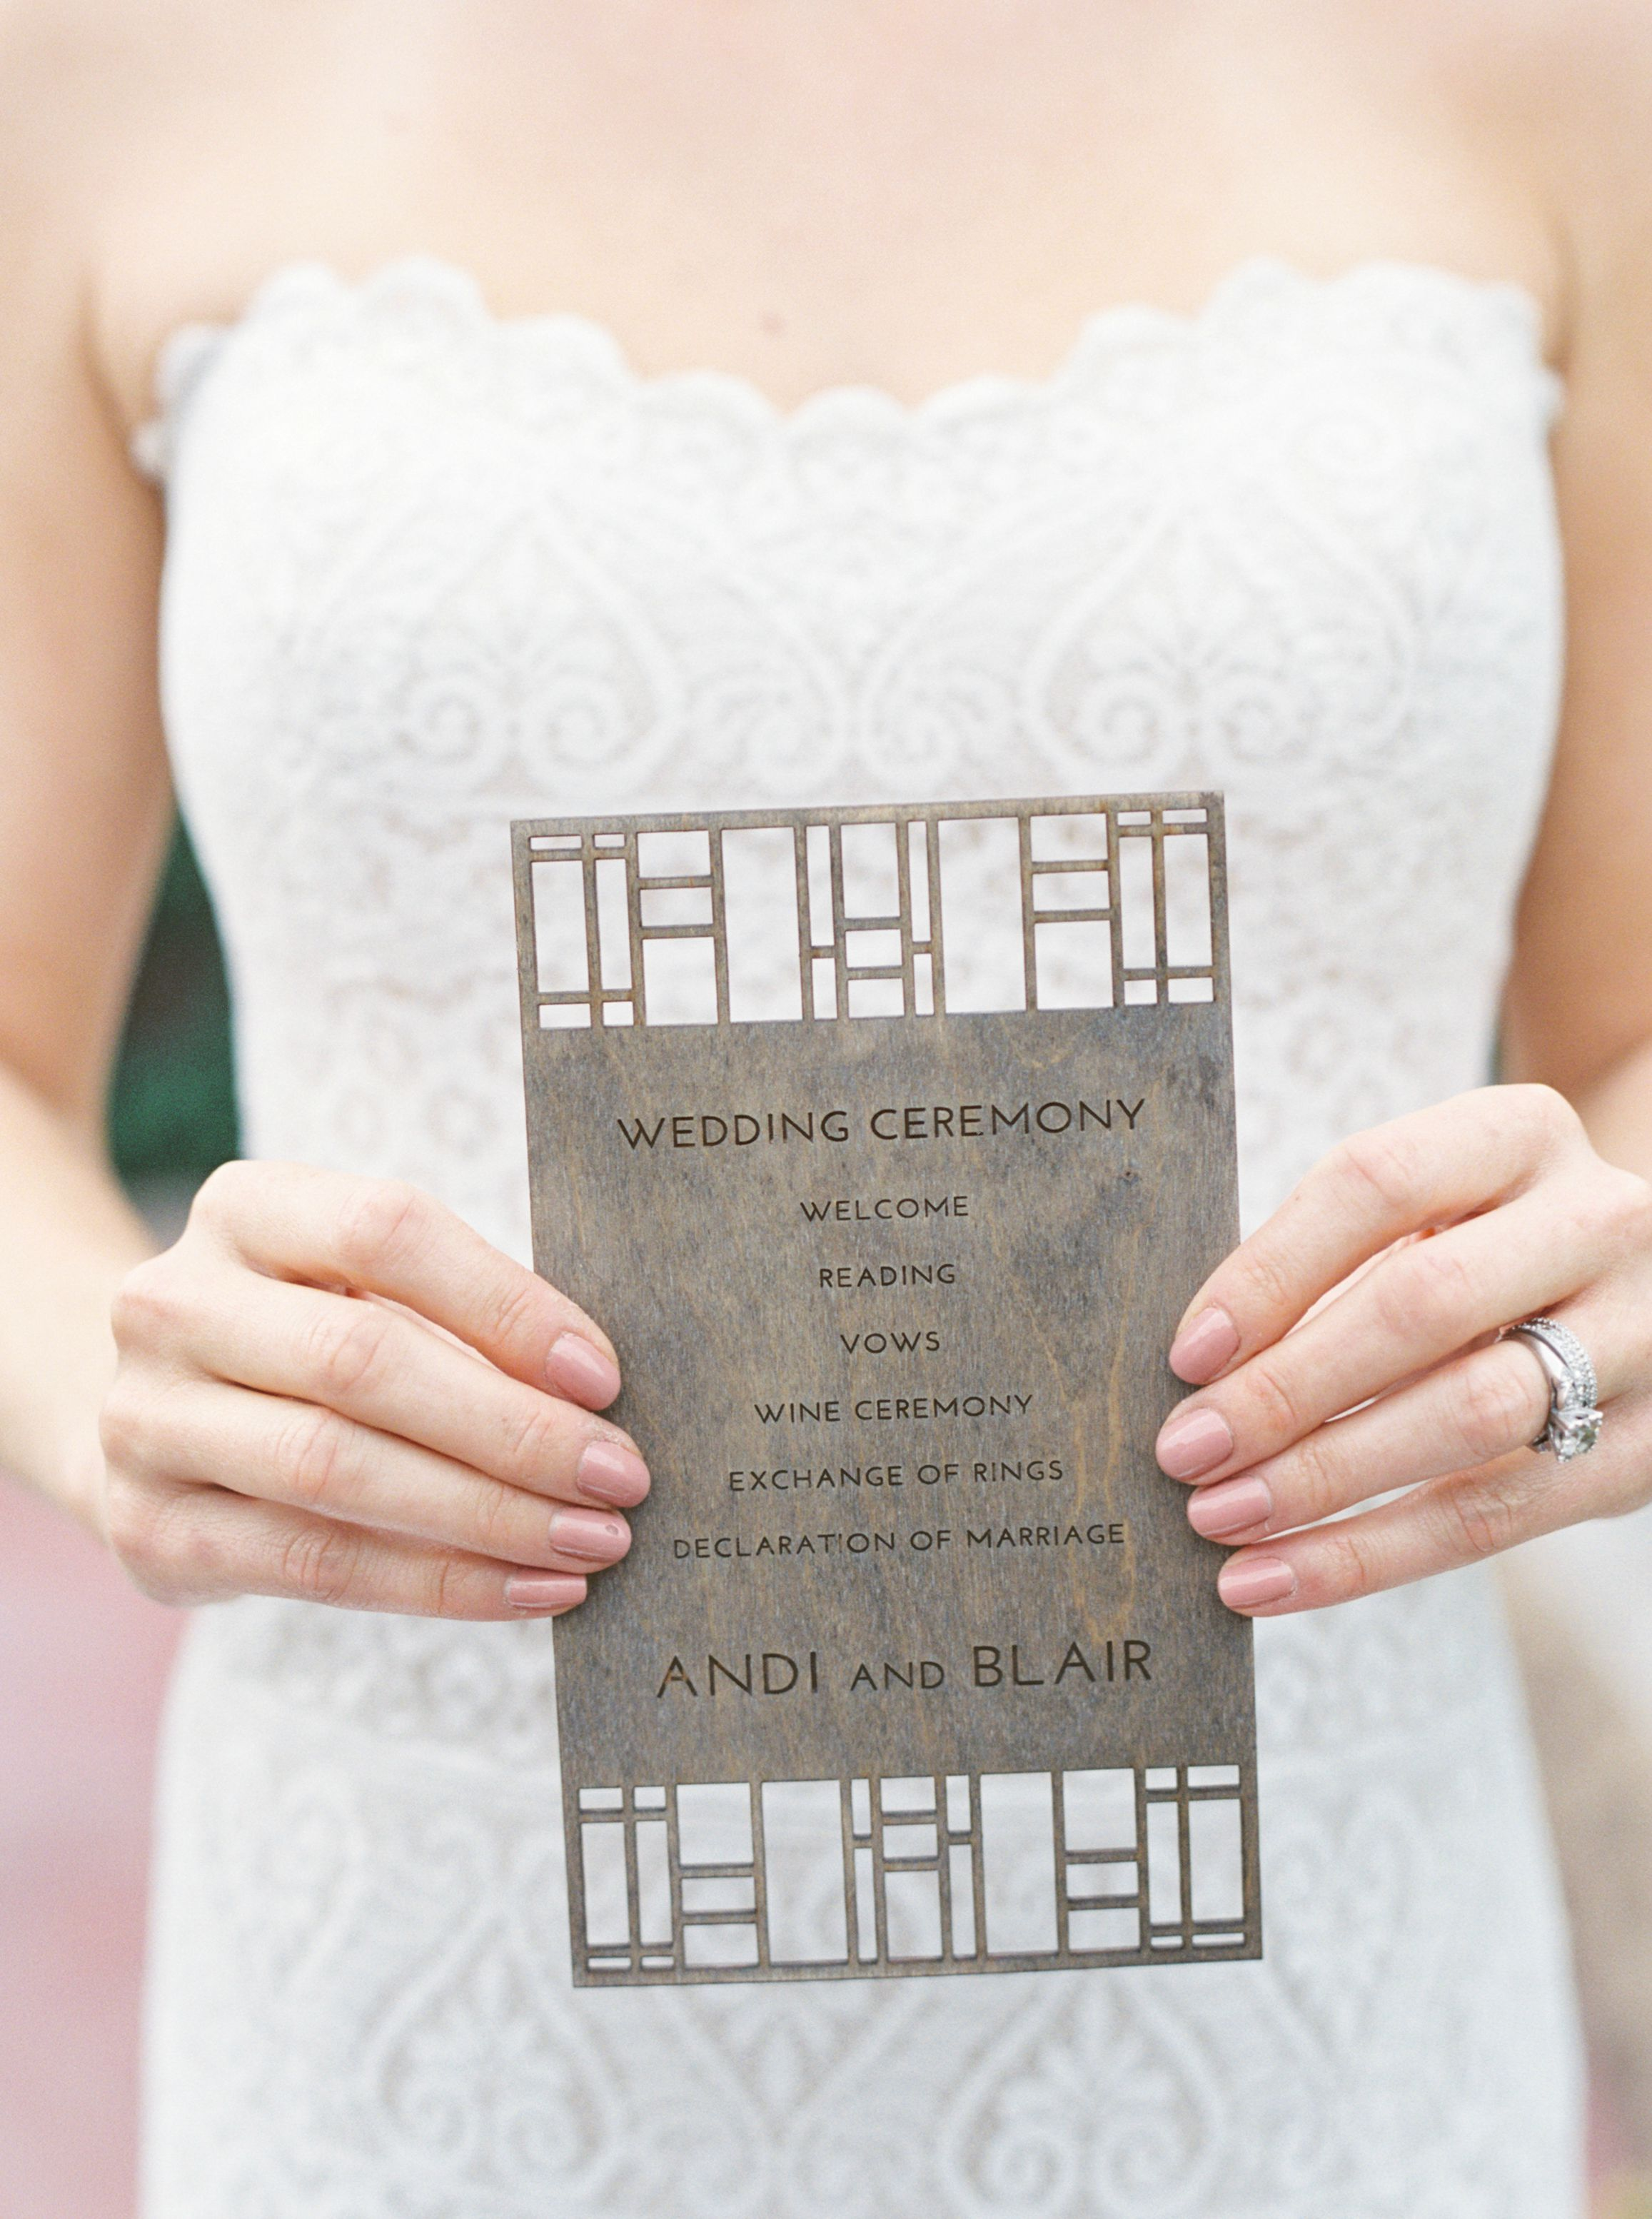 Destination weddings Wooden program inspired by Frank